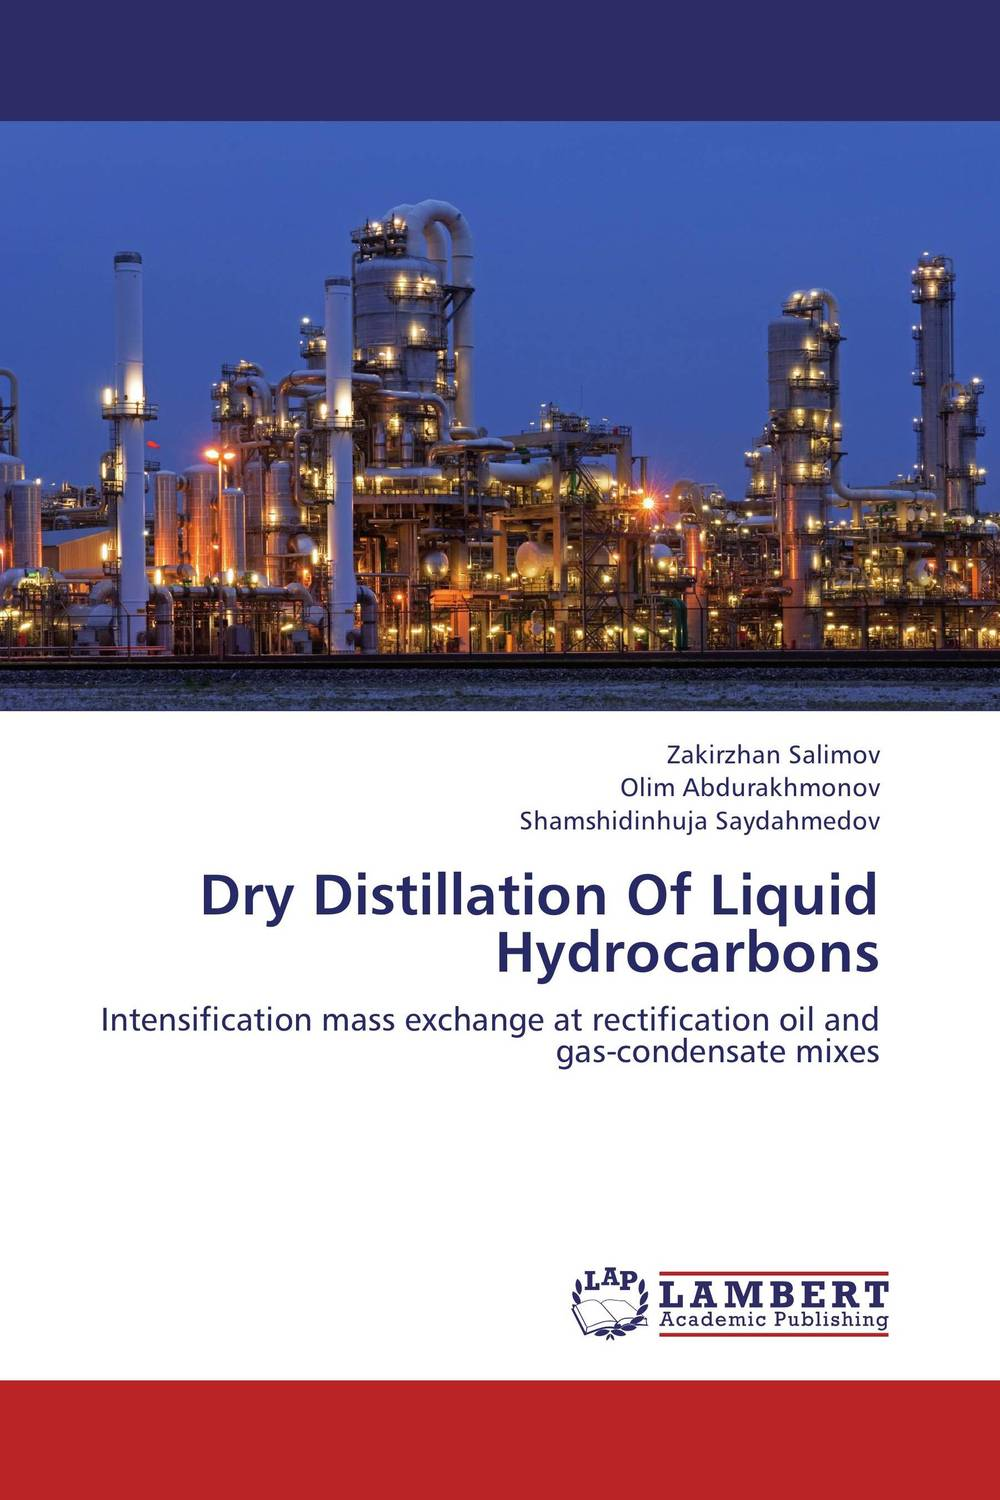 Dry Distillation Of Liquid Hydrocarbons suleman dangor shaykh yusuf of macassar